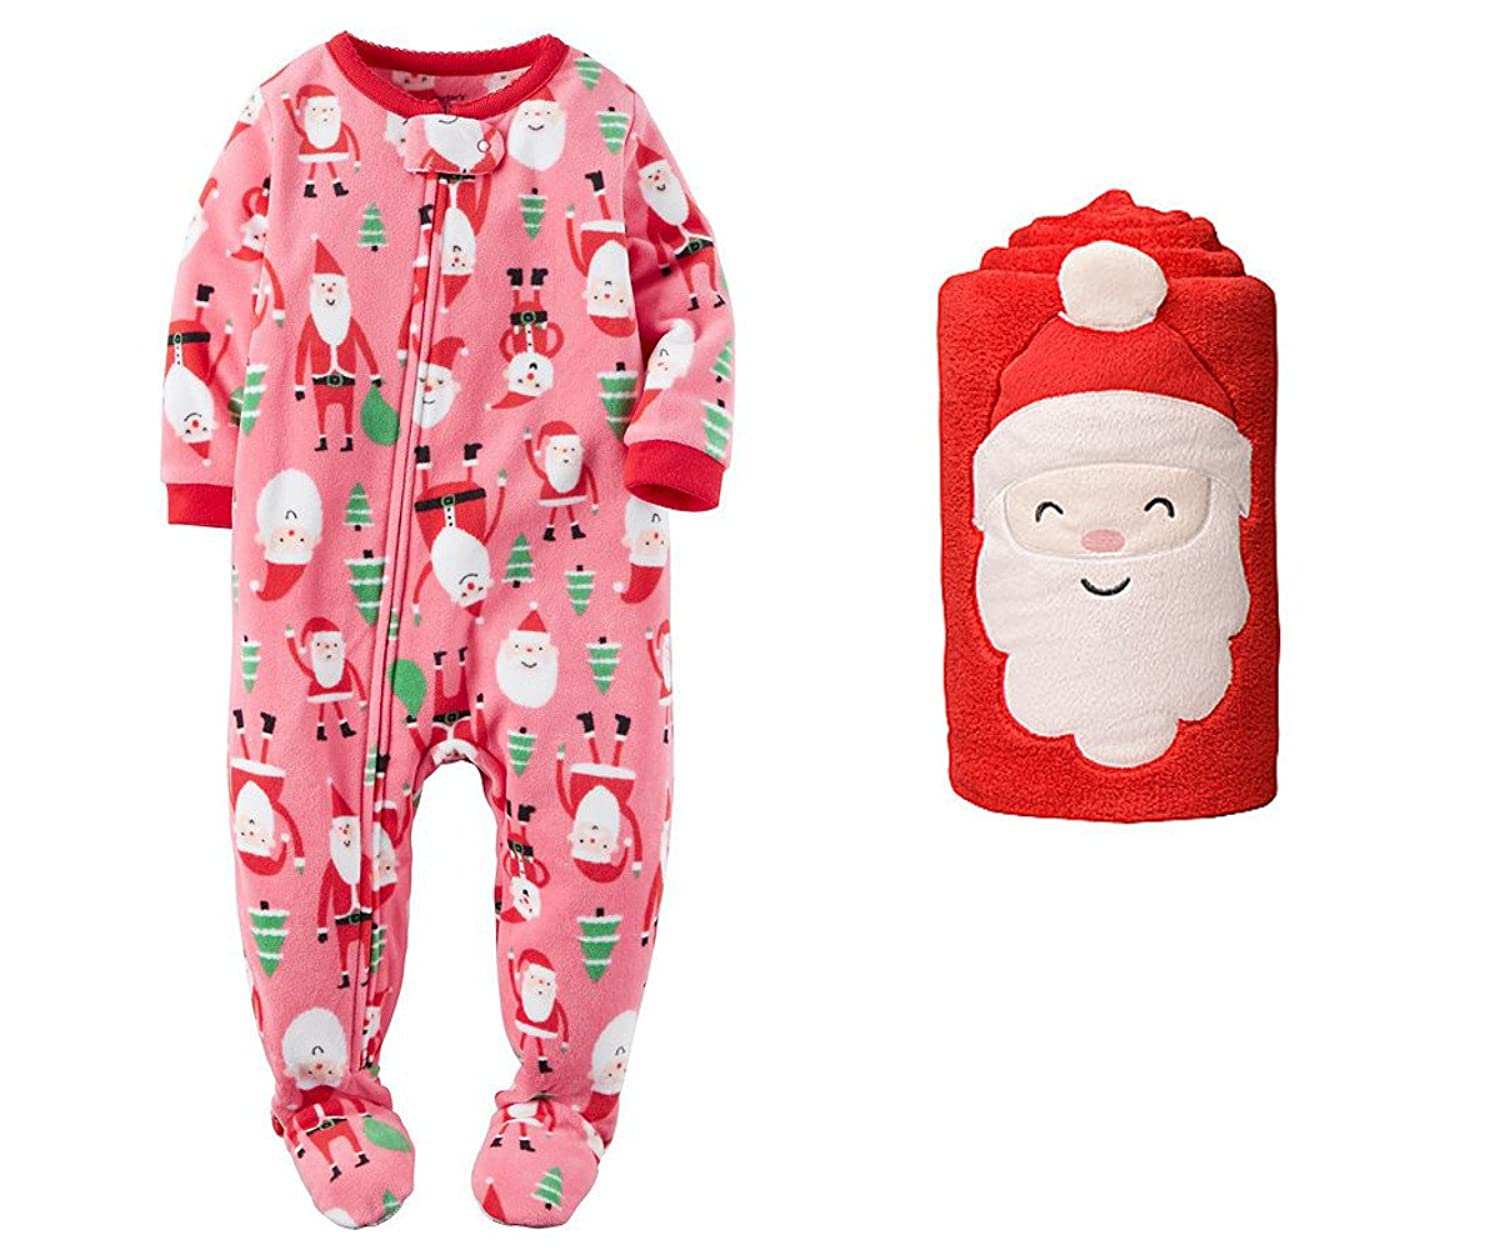 fbf4daa8ba Carter s Baby Girl s Fleece Footed Pajamas with Blanket Christmas ...